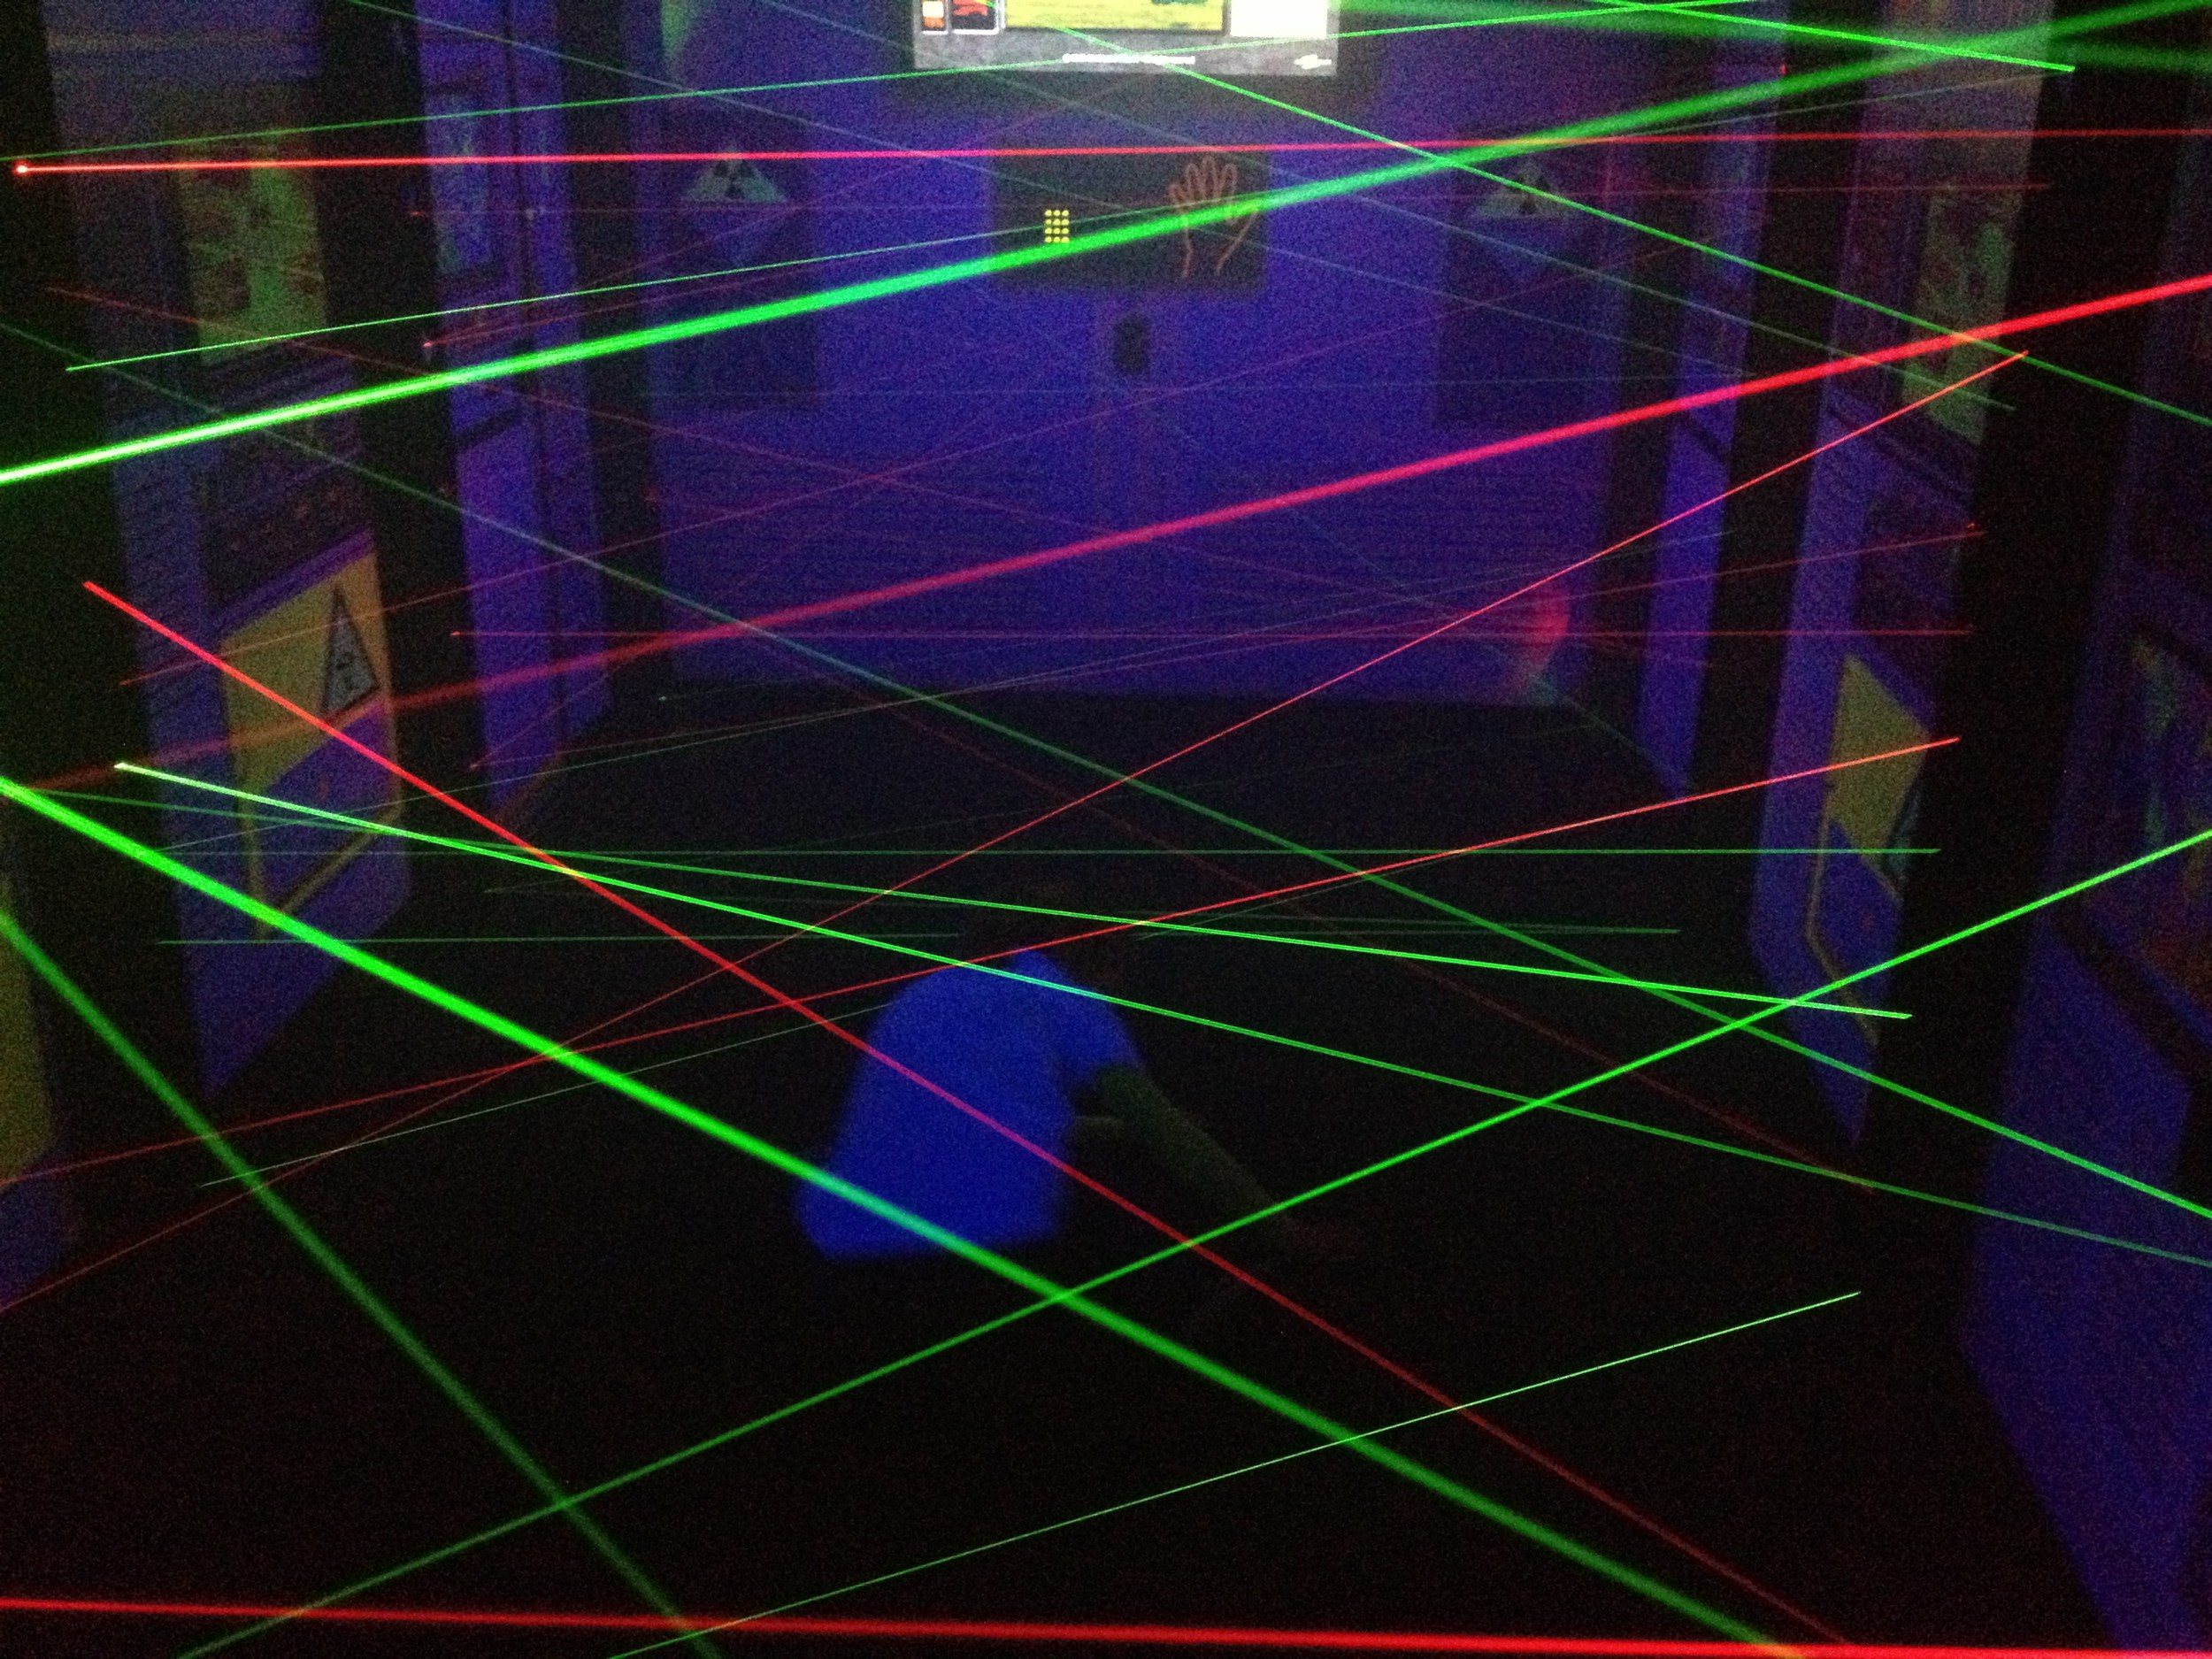 If you've ever wondered if you could maneuver through a room of laser beams to steal a precious diamond or silver briefcase full of plutonium, The Launch Lazer Maze Contest may be your only opportunity�without risk of arrest. I completed half of the course in 1:48 with 12 beams broken. Two words: mission impossible.